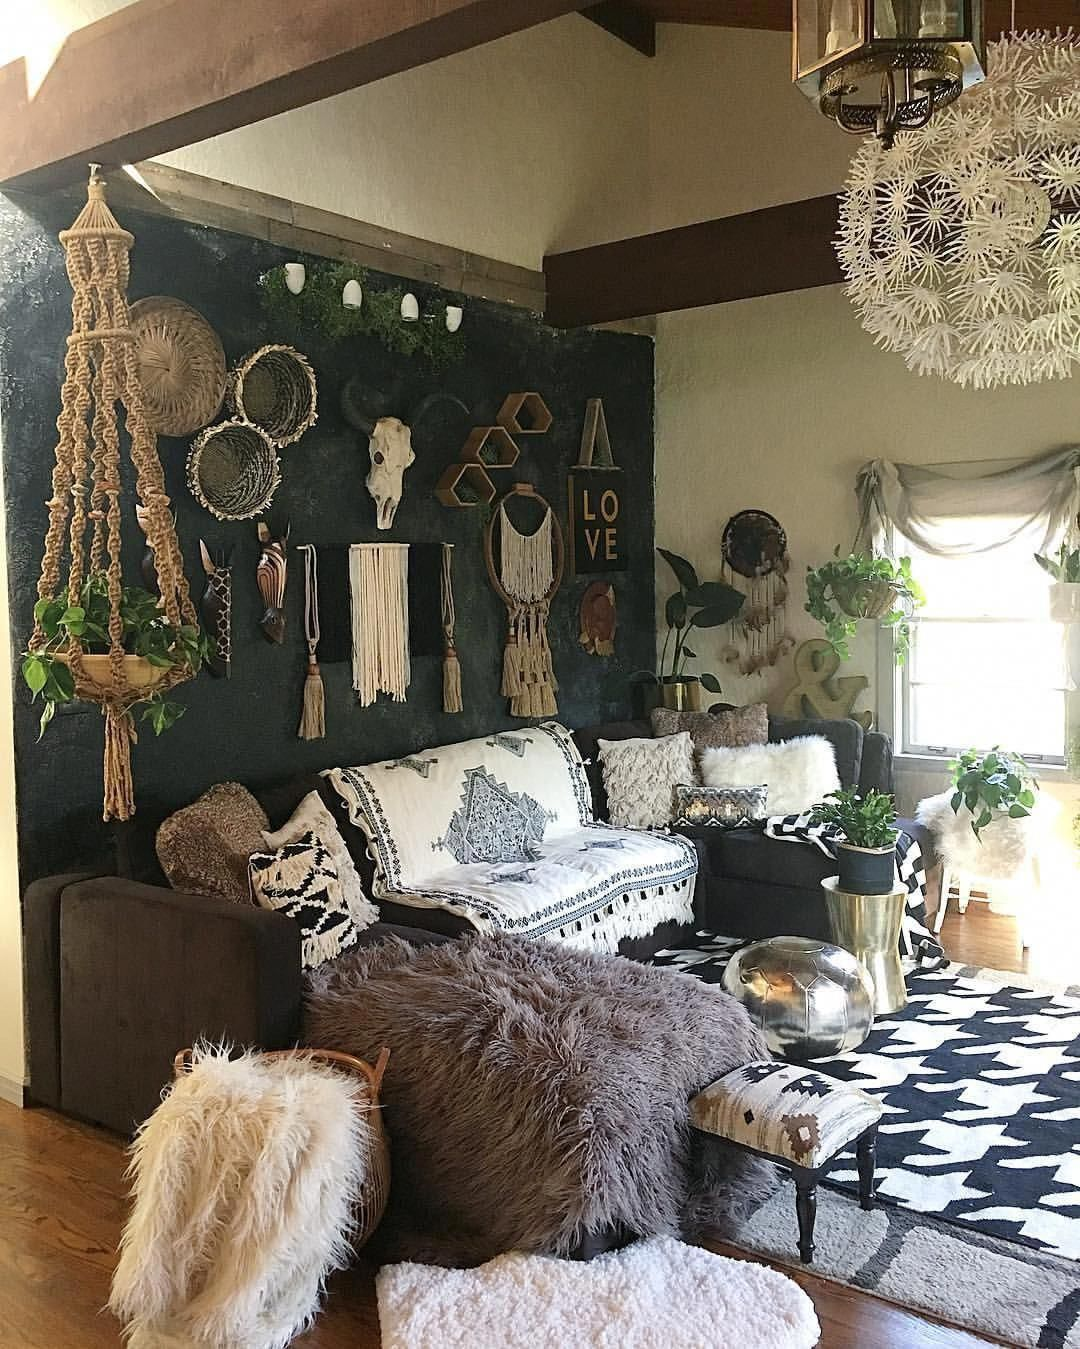 About Eclectic Interior Design Ideas for Your Best Home #Eclectic #Interior #Design #Living #Spaces #LivingRoom #Decor #HomeDecor #Ideas #homedecorideas